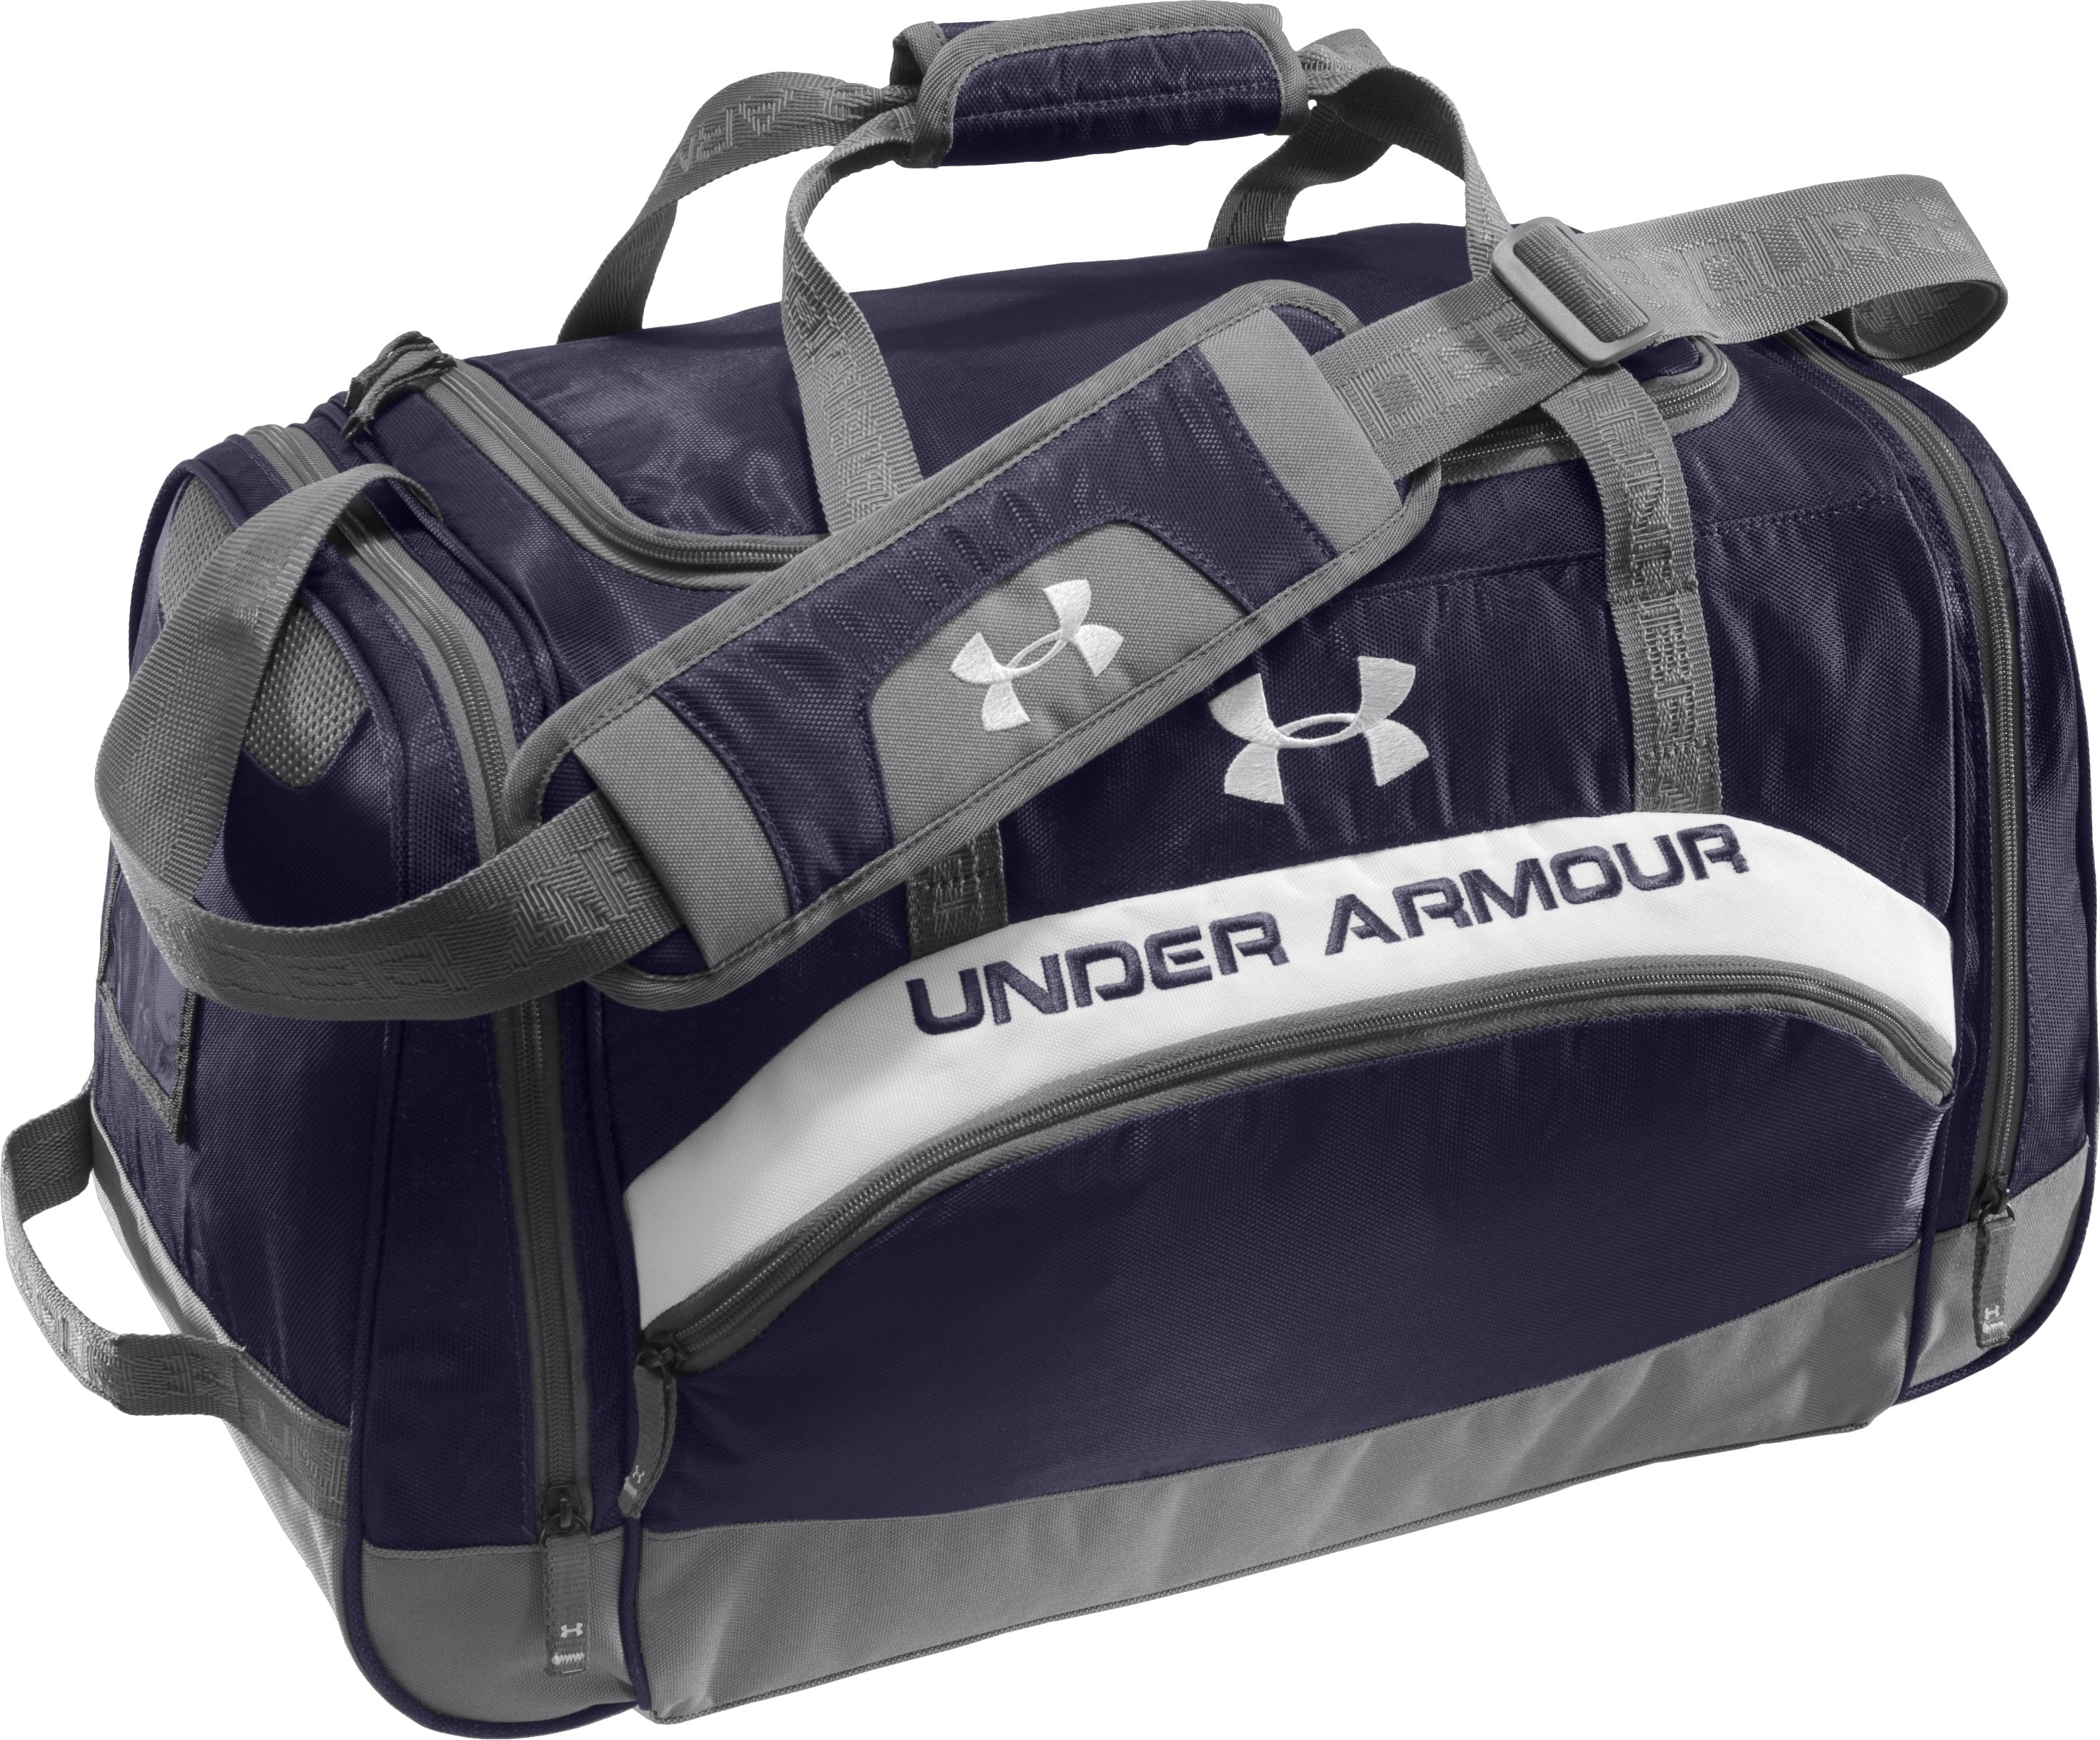 PTH® Victory Small Team Duffel Bag, Midnight Navy, zoomed image